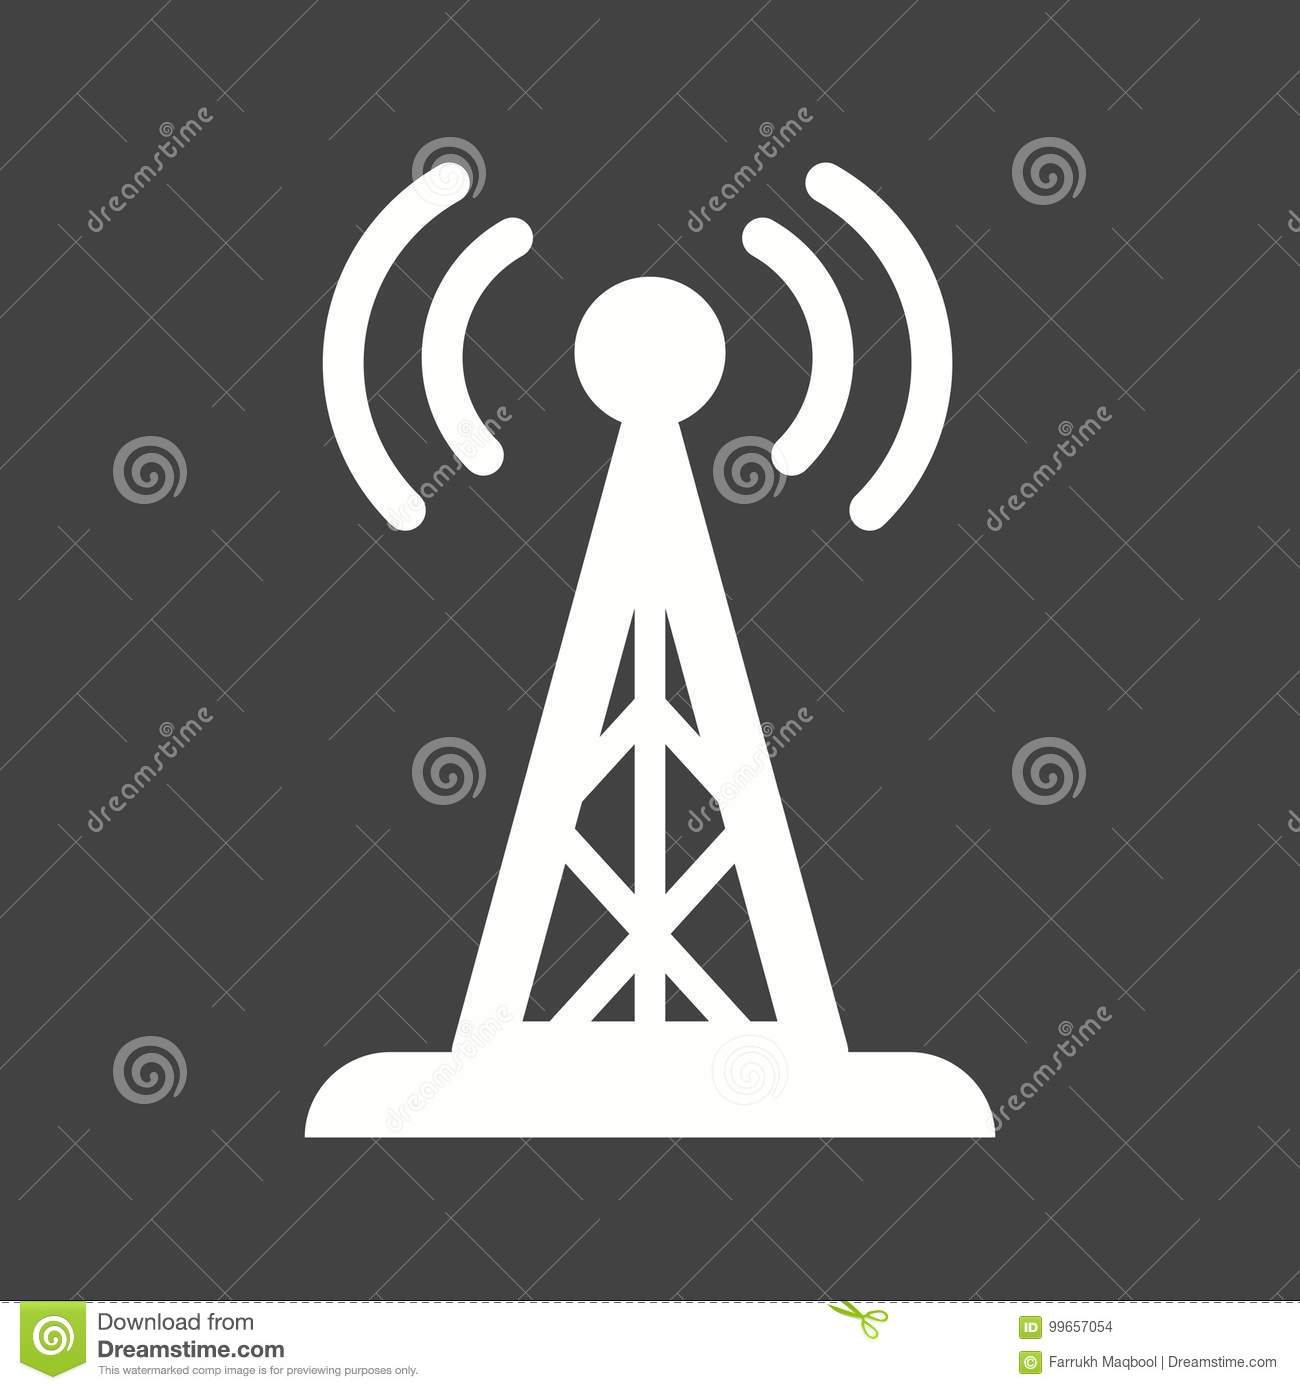 Signals Tower II stock vector  Illustration of technology - 99657054